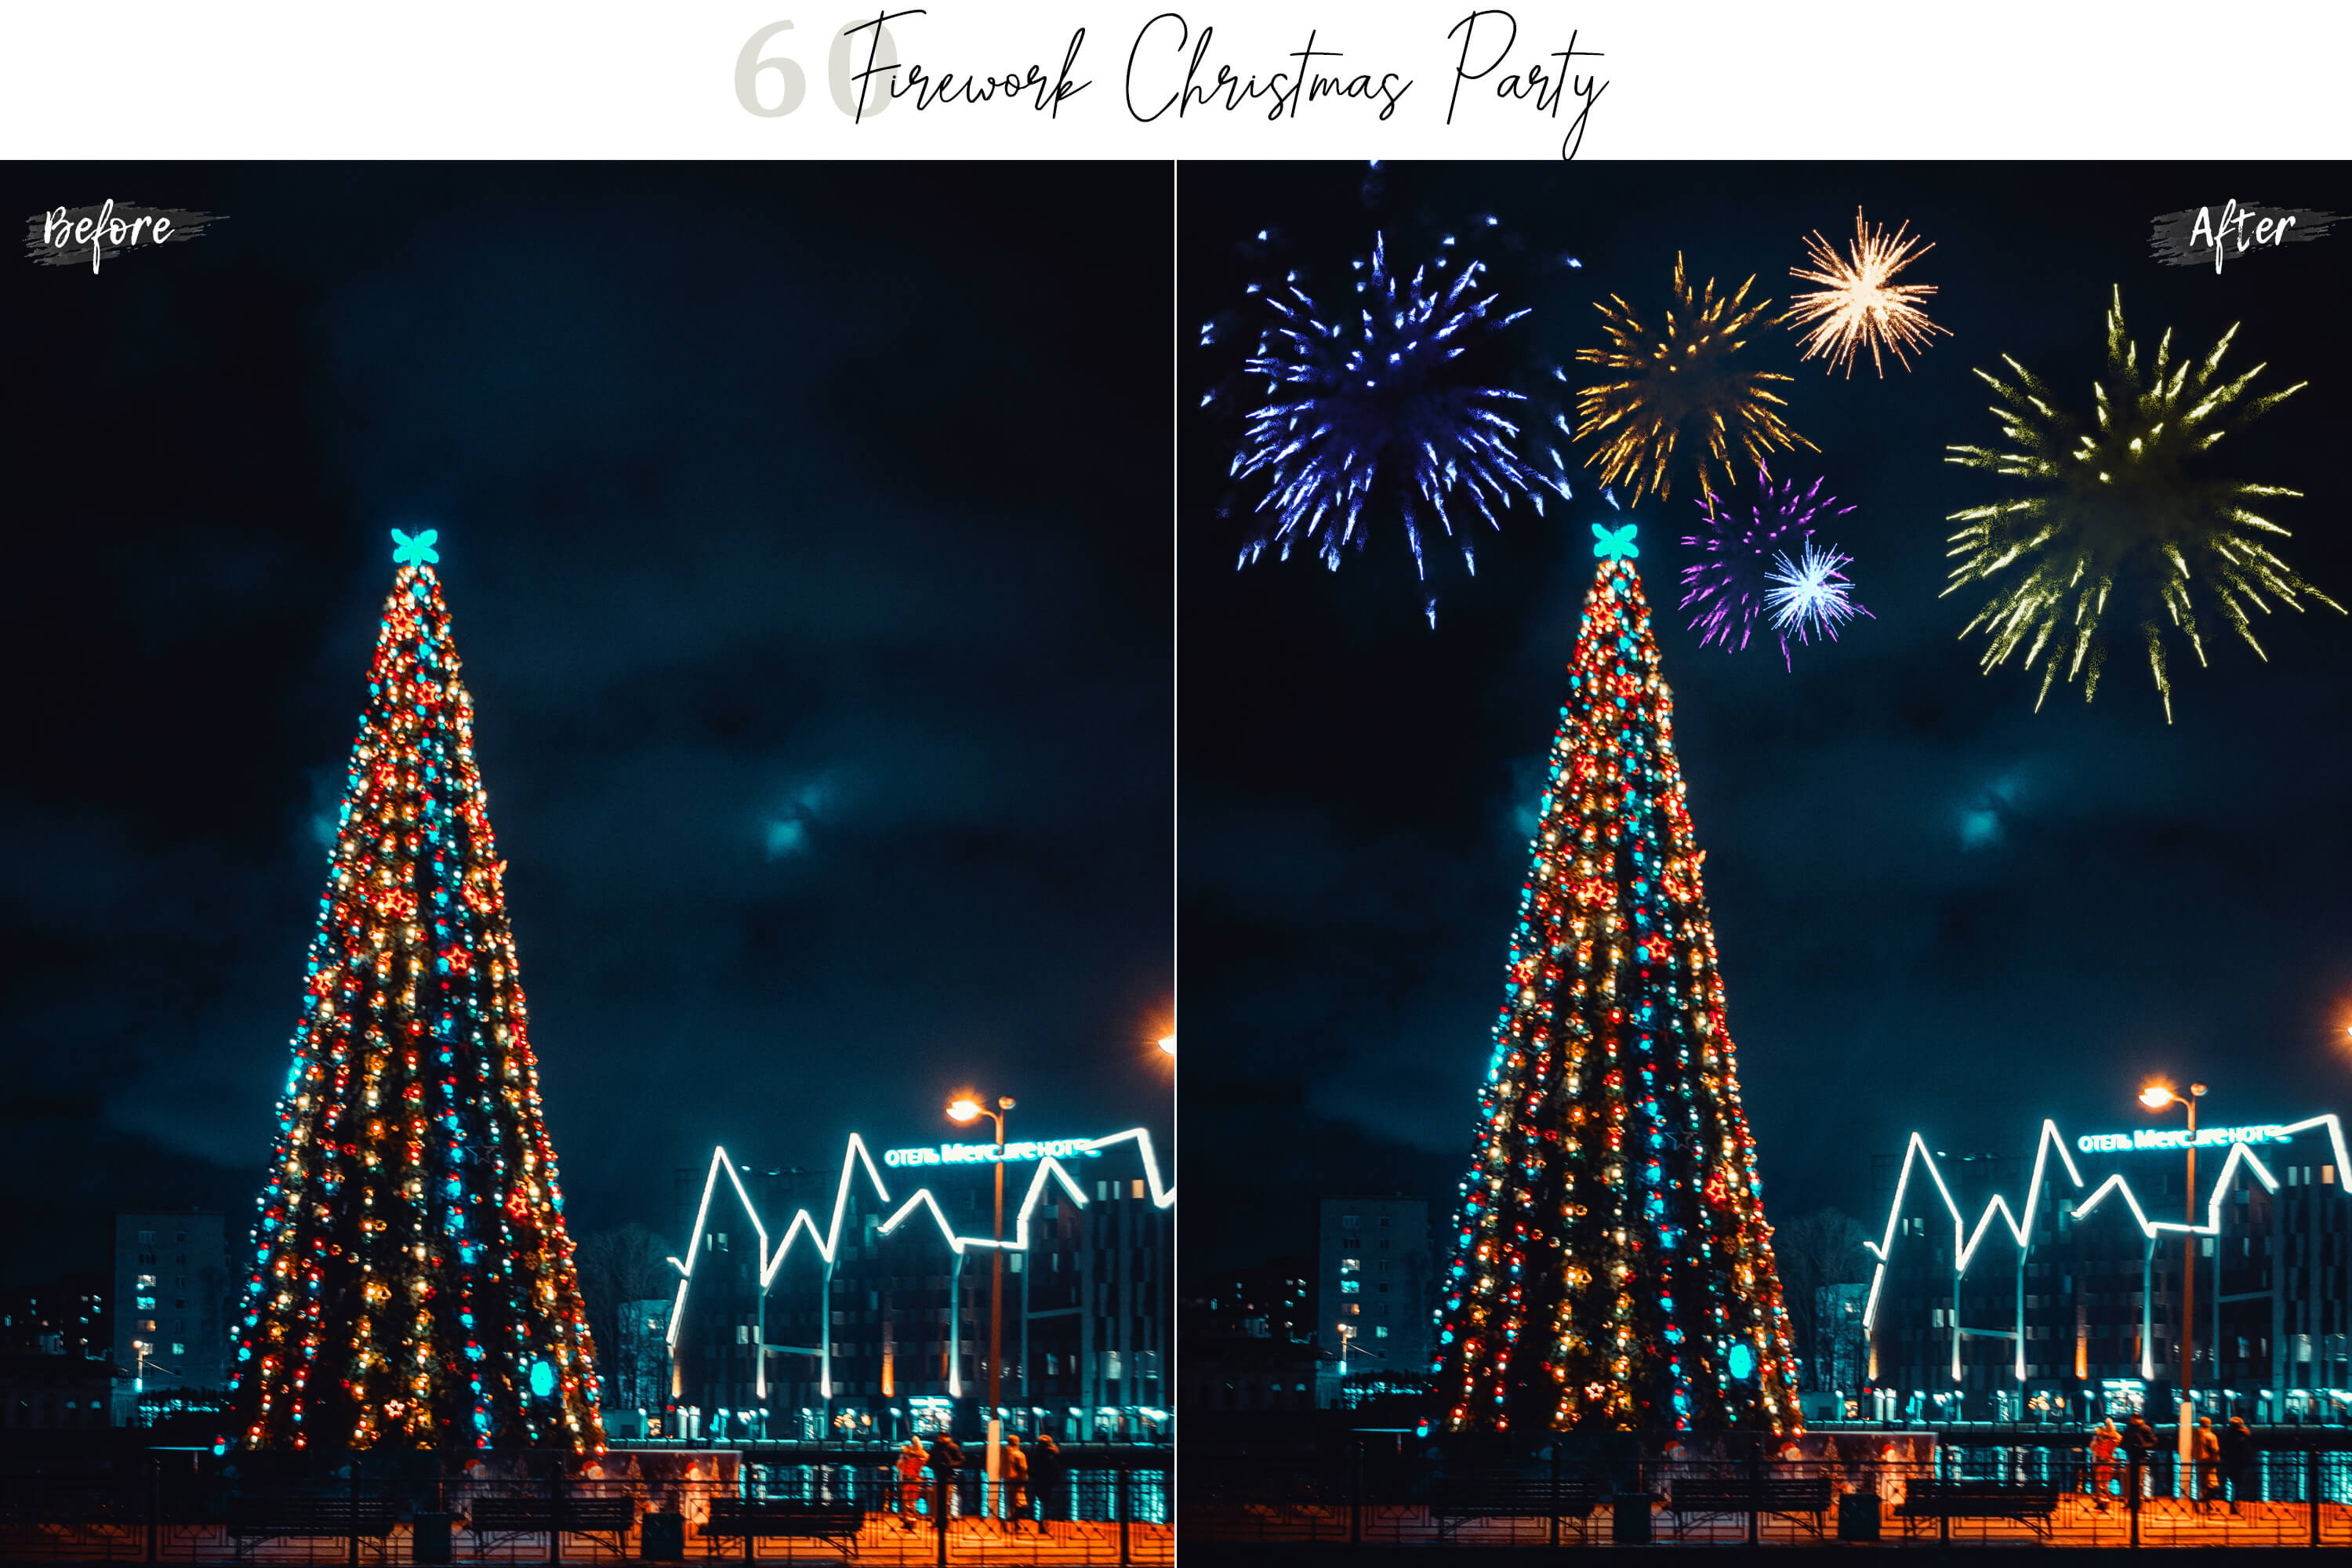 60 Firework Christmas Party Overlays example image 6